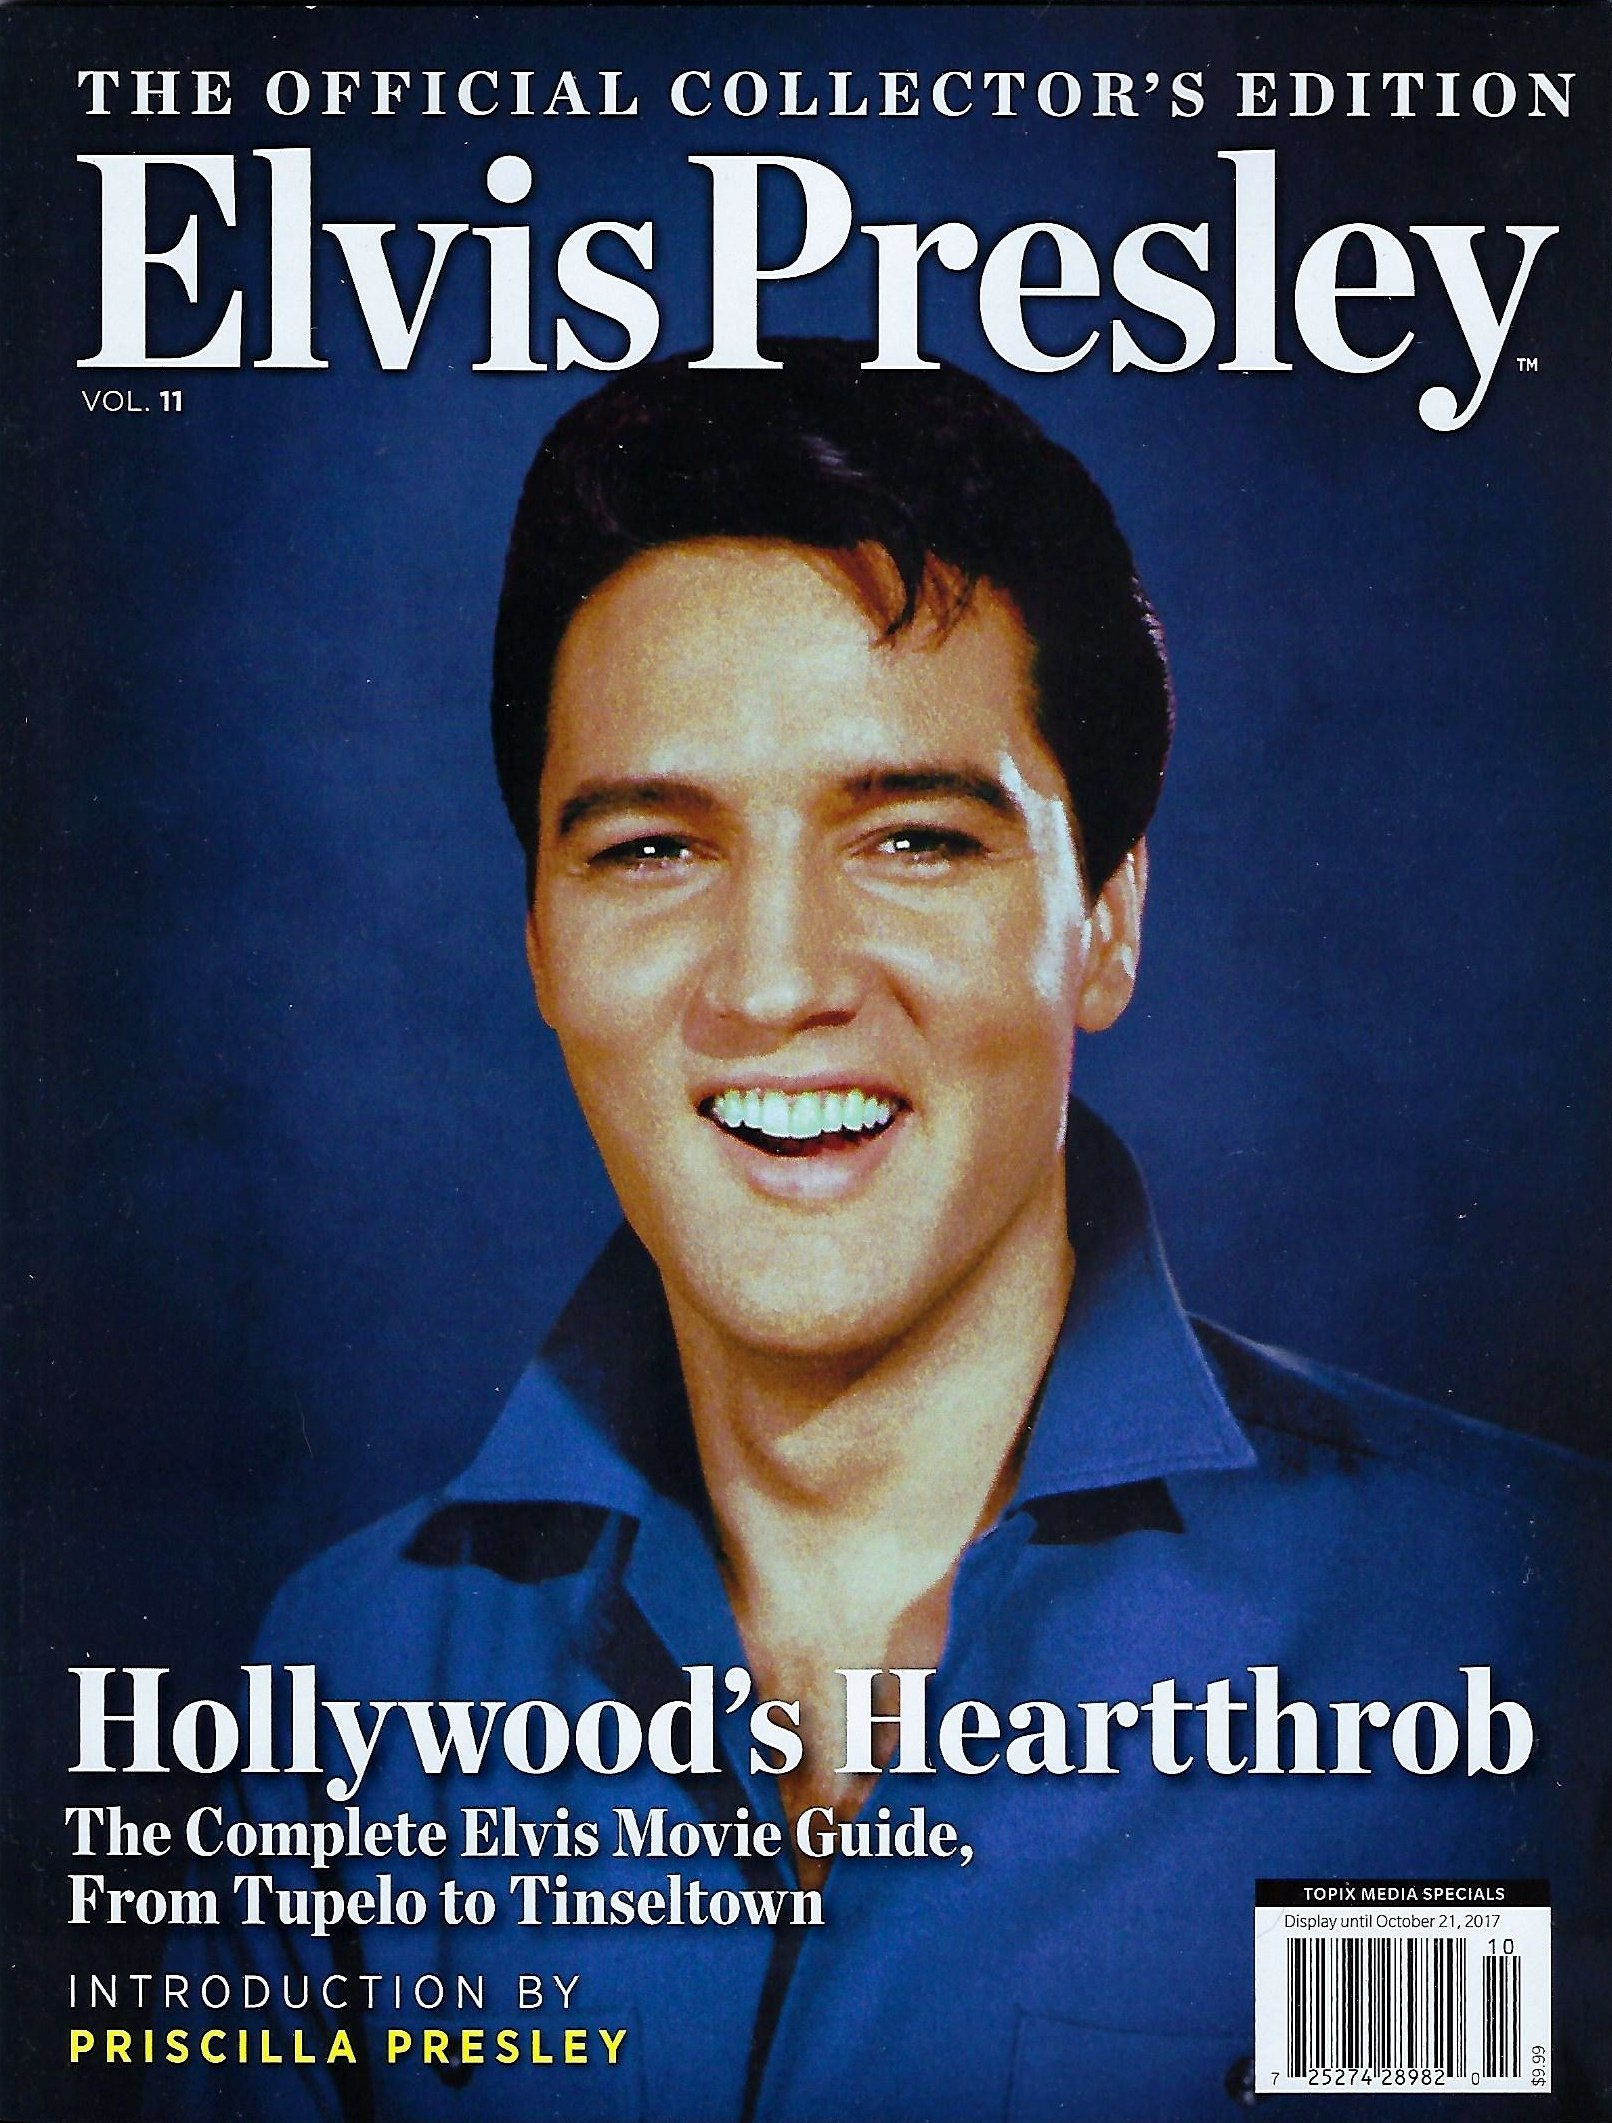 Download Elvis Presley Official Collectors Edition Magazine Vol 11, Hollywood's Heartthrob 2017 98 pages pdf epub